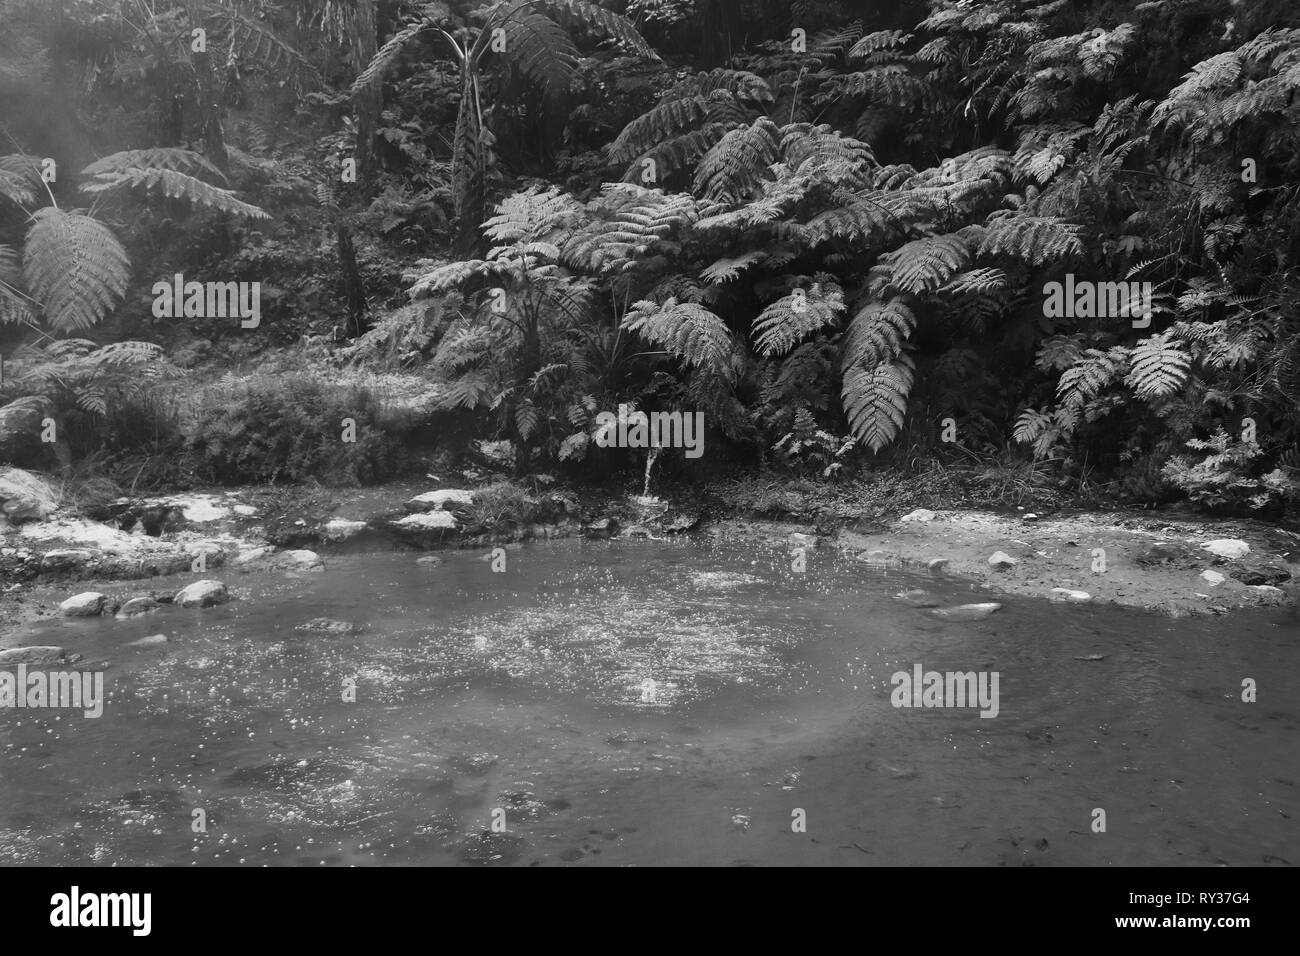 Smoking fumarole and water spring in geothermal area in a forest - Stock Image